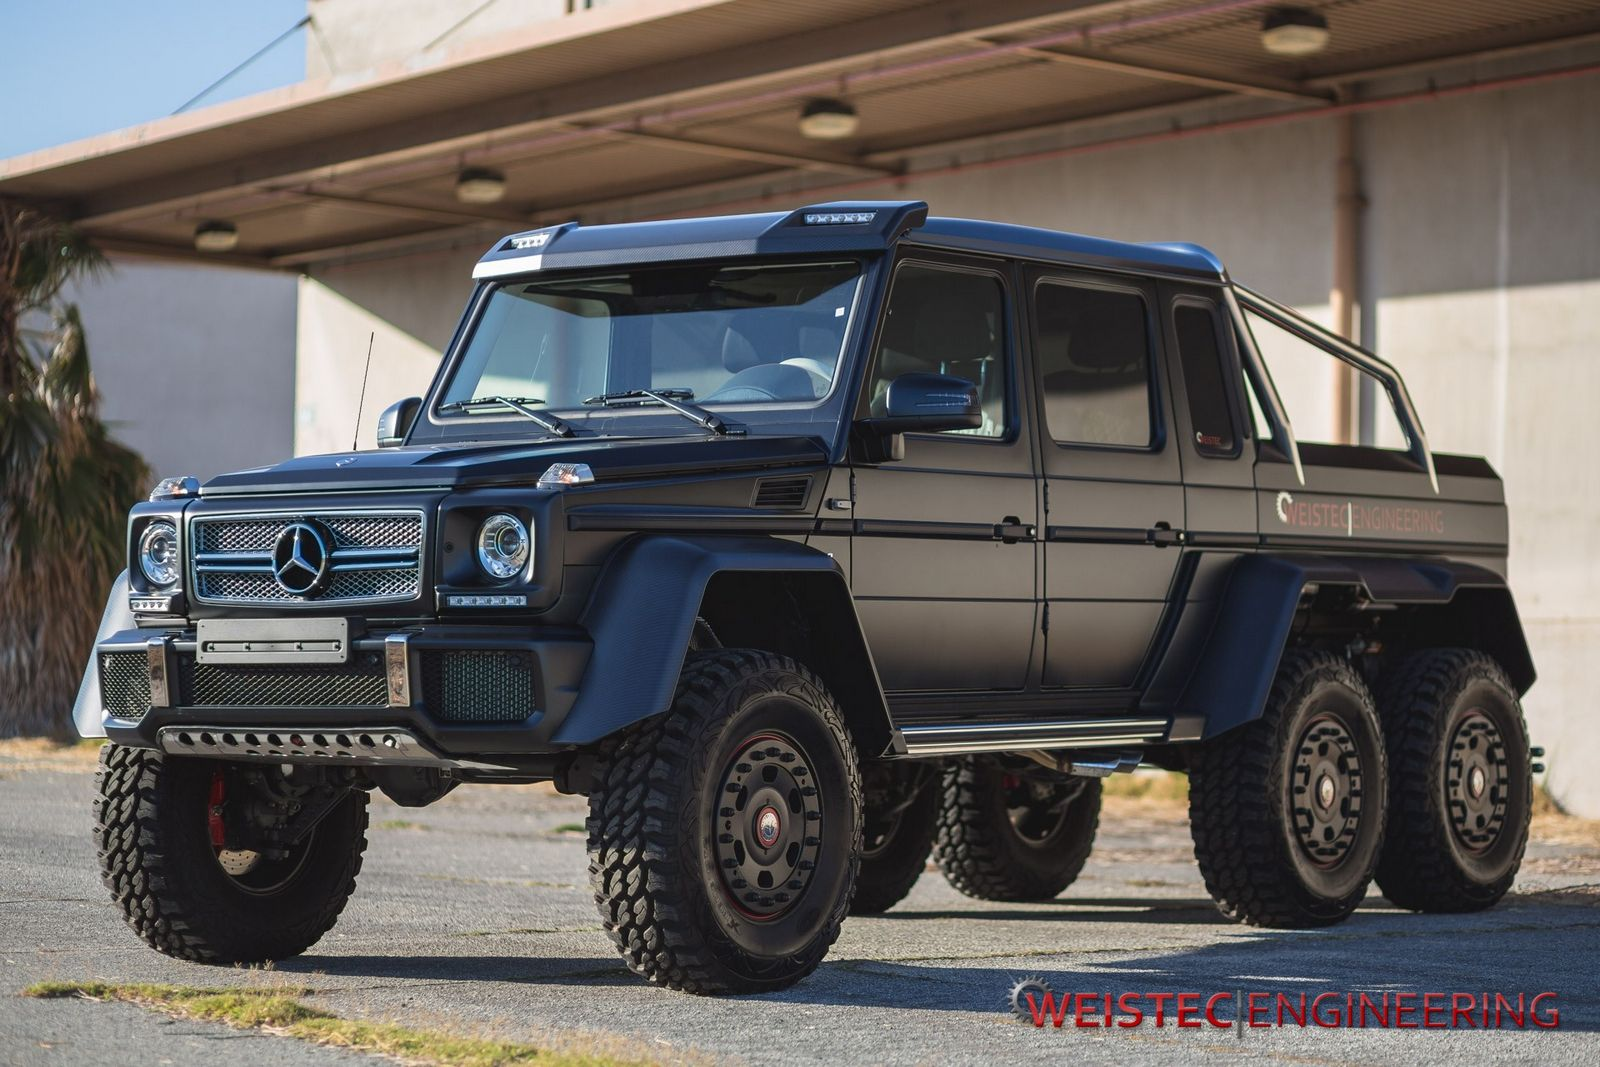 Official mercedes benz g63 amg 6x6 by weistec engineering for Mercedes benz g63 6x6 for sale